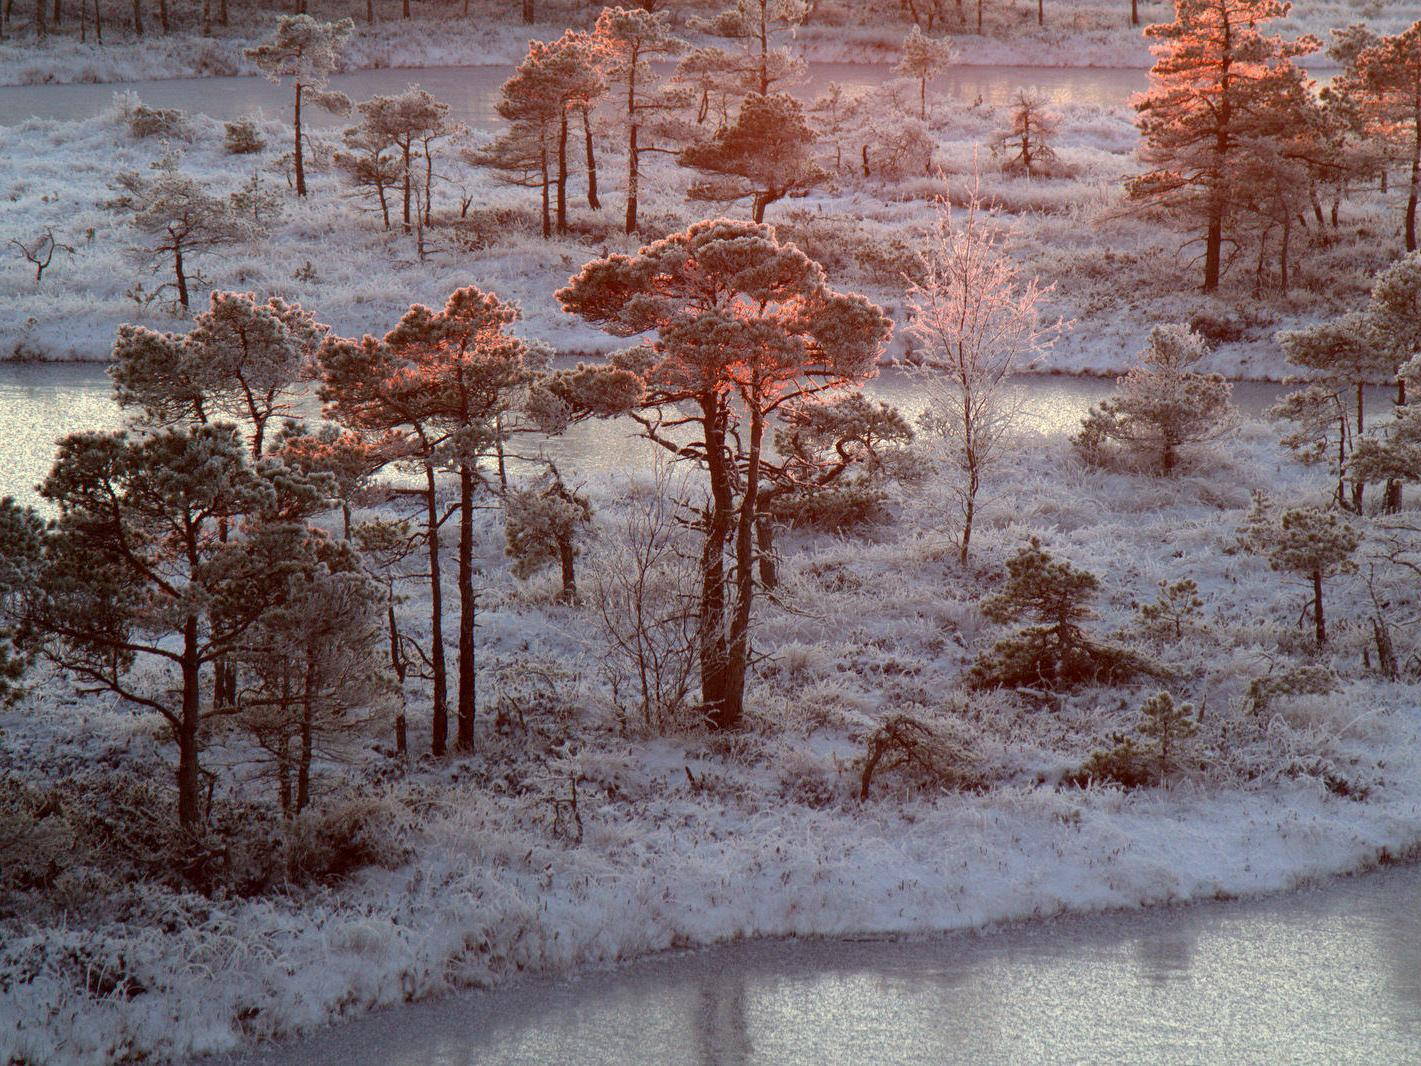 Frosty Forest © Maris Zudrags for Accreditation Services International